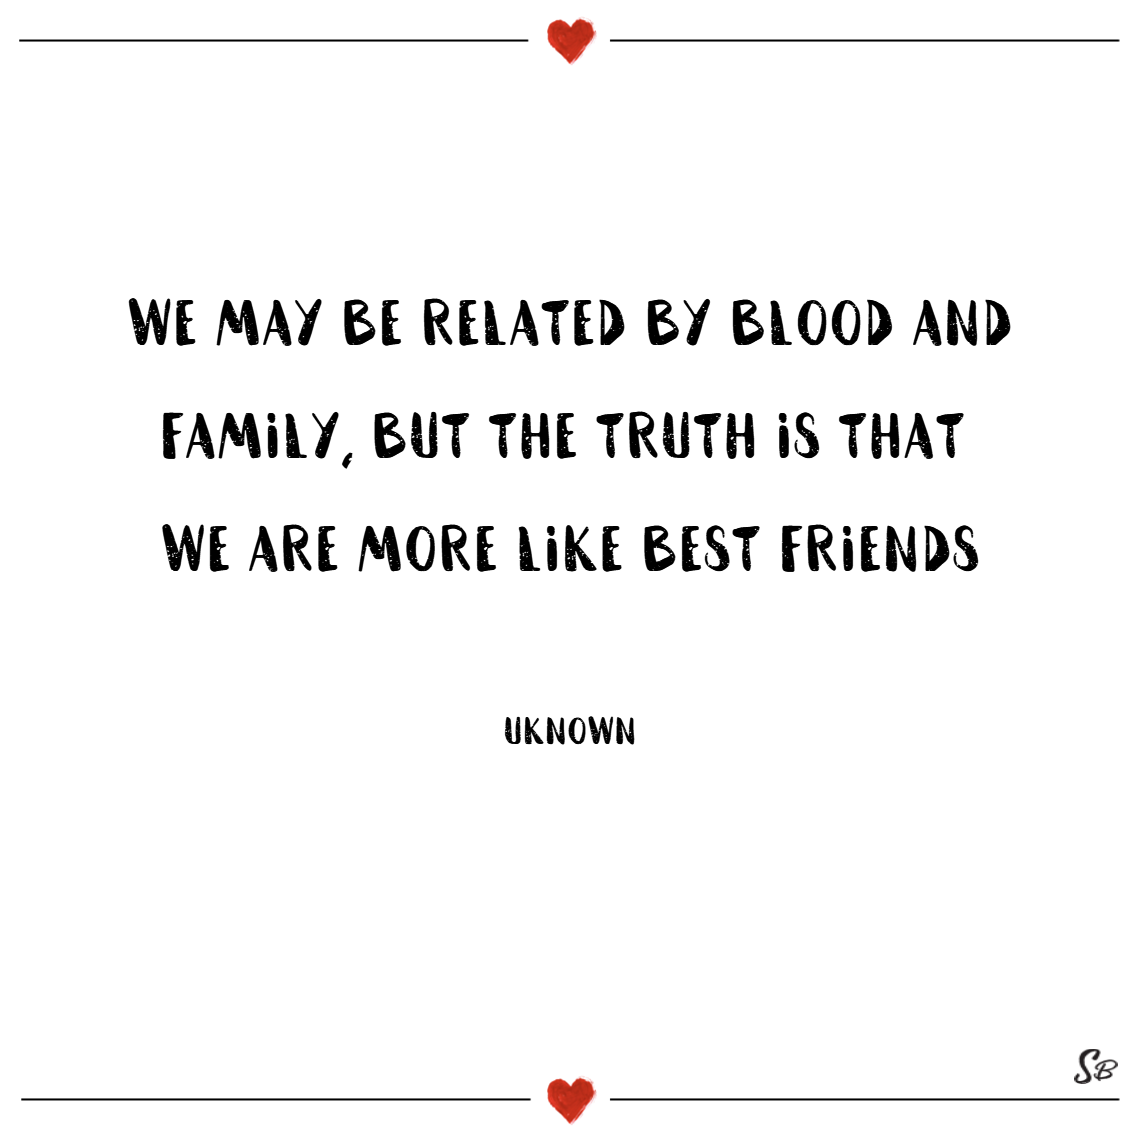 We may be related by blood and family, but the truth is that we are more like best friends. – unknown